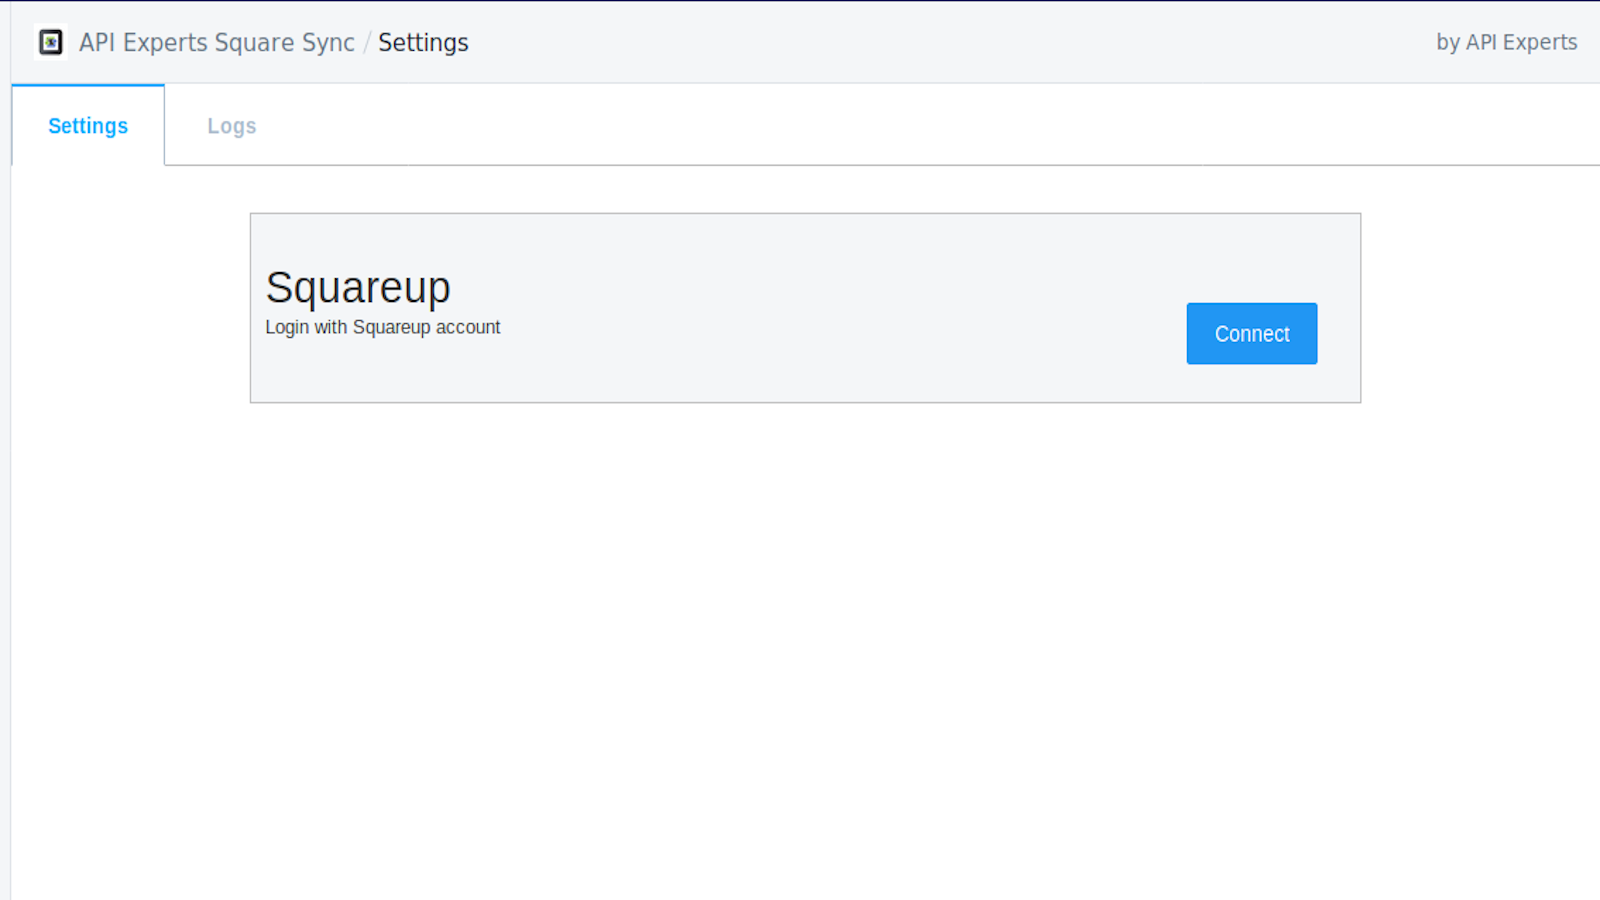 Settings page - Square not connected yet